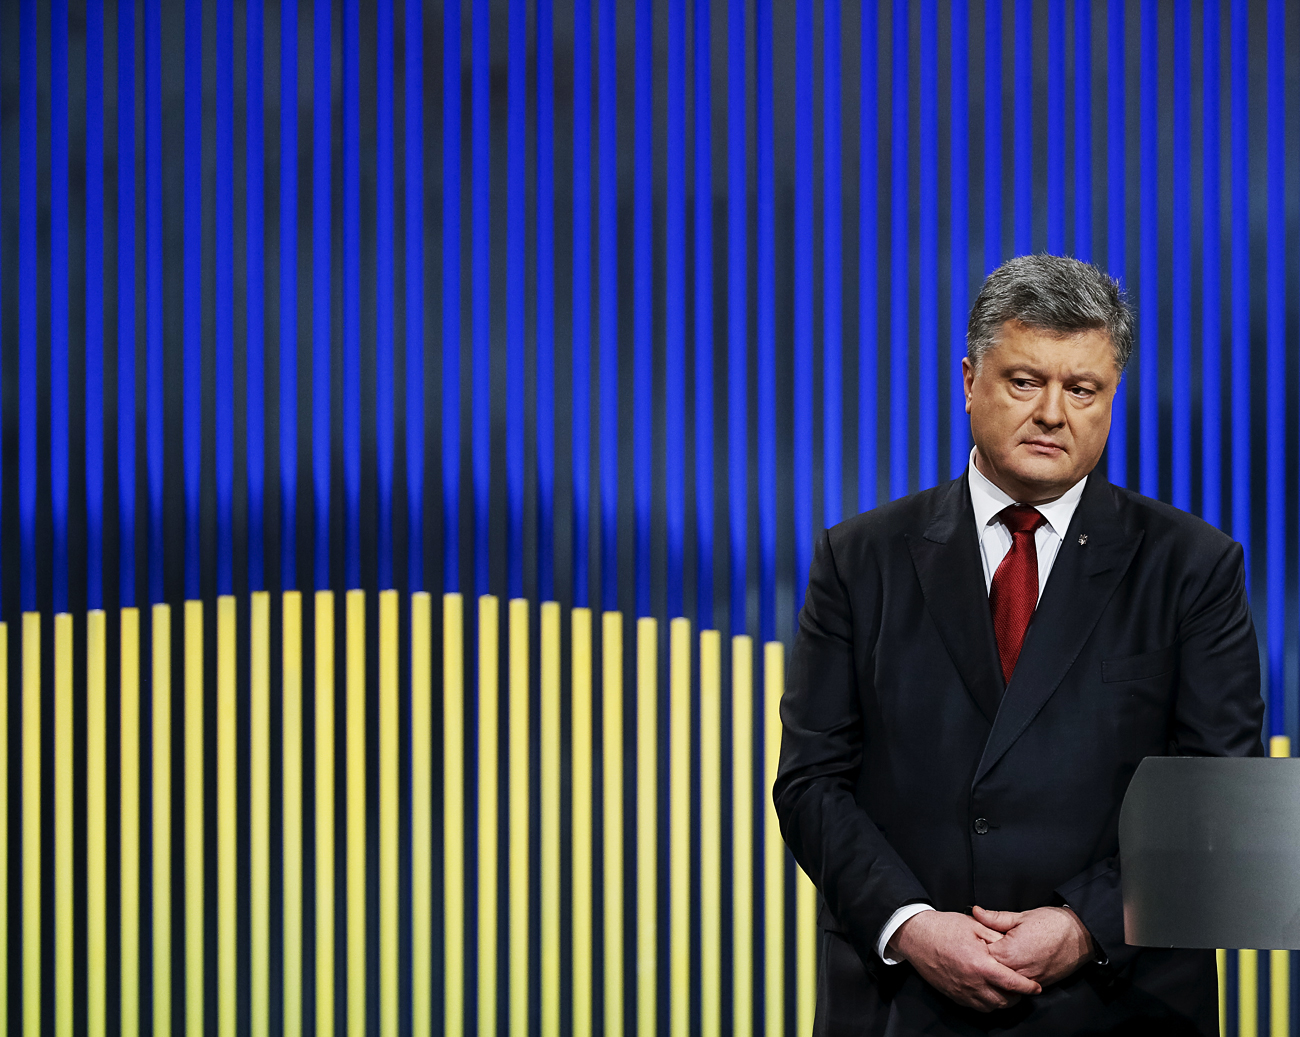 Now most Ukrainian officials are tight-lipped, while others are scrambling to retract recent remarks criticizing the U.S. president-elect. Photo: Ukrainian President Petro Poroshenko attends a news conference in Kiev, Ukraine, on Jan. 14, 2016.